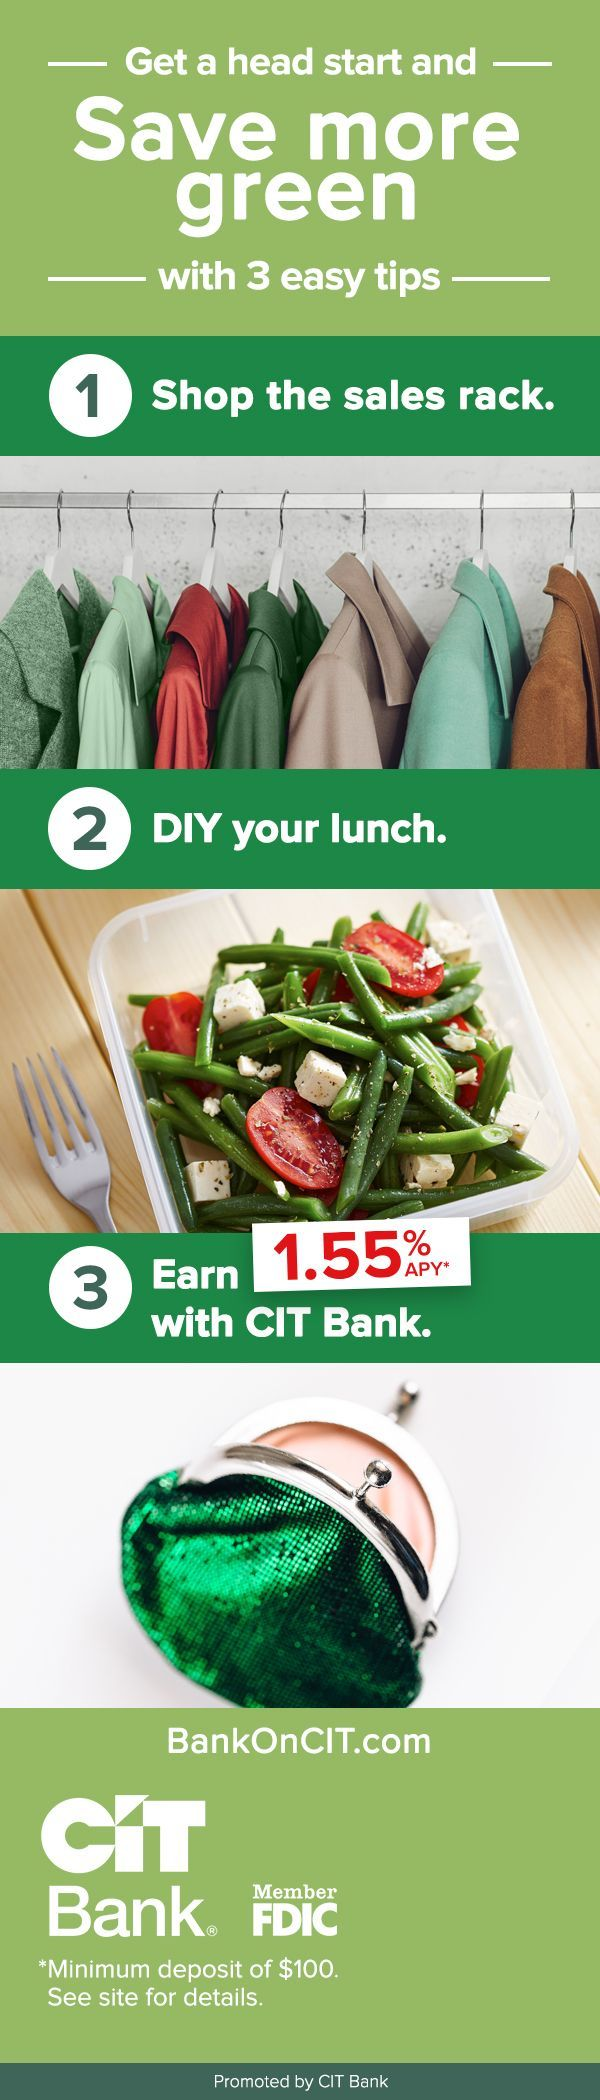 Earn more interest compared to America's most popular banks with CIT Bank.